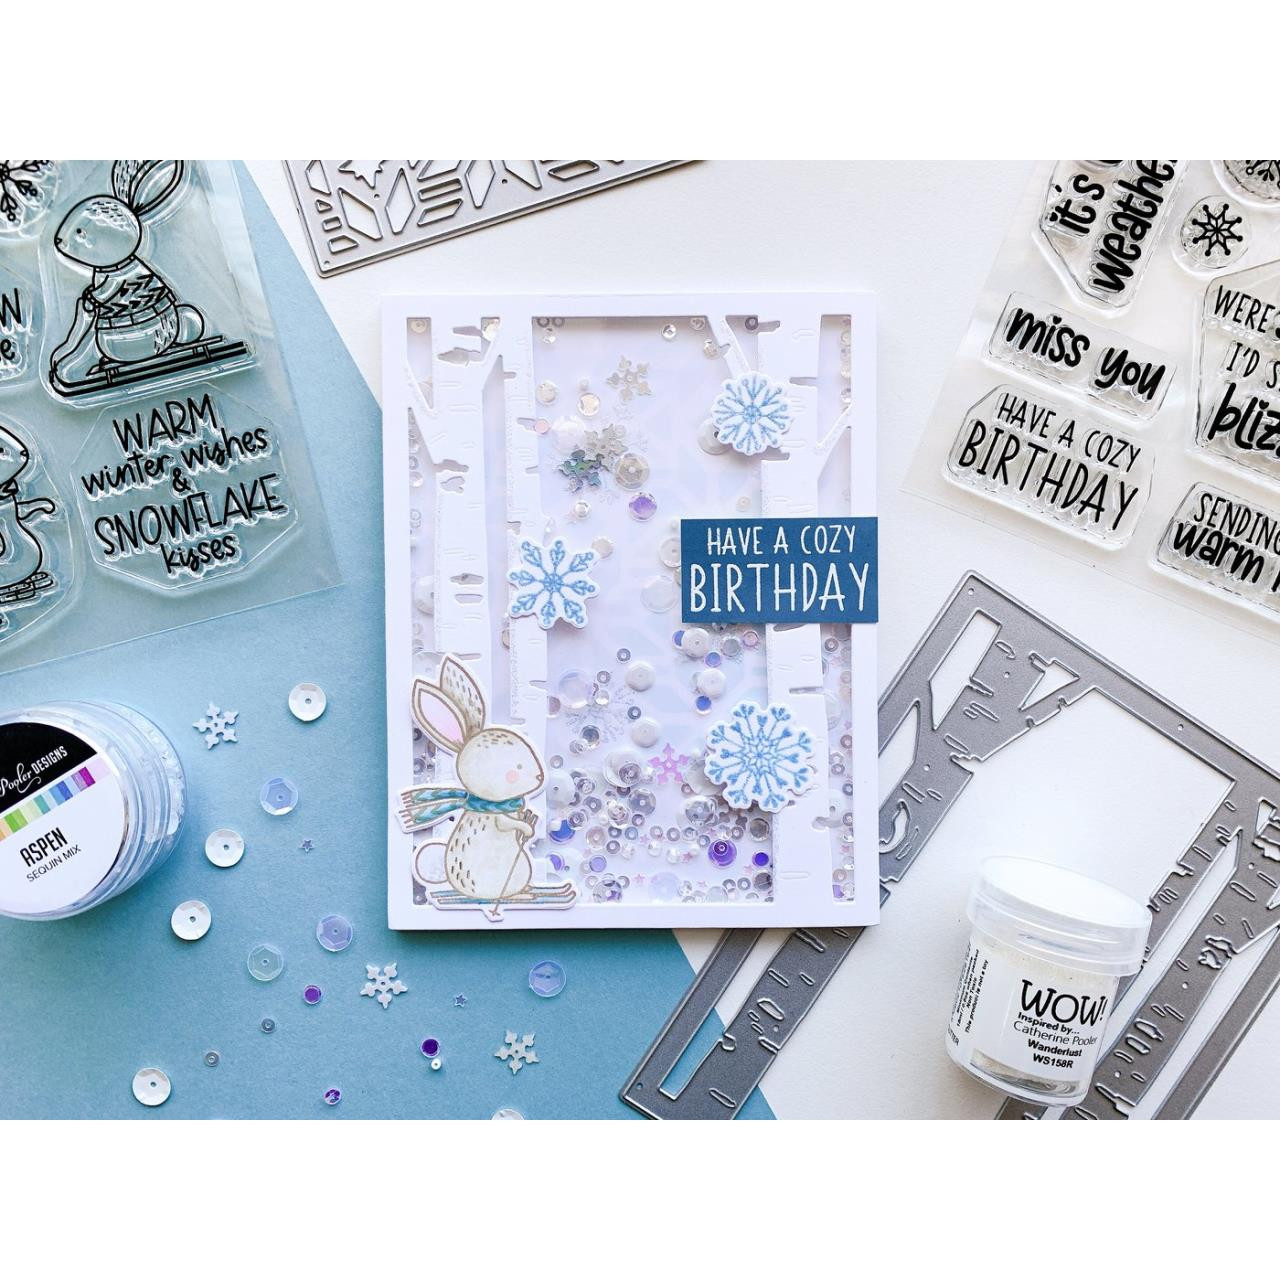 Bunny Slopes, Catherine Pooler Clear Stamps - 819447028498